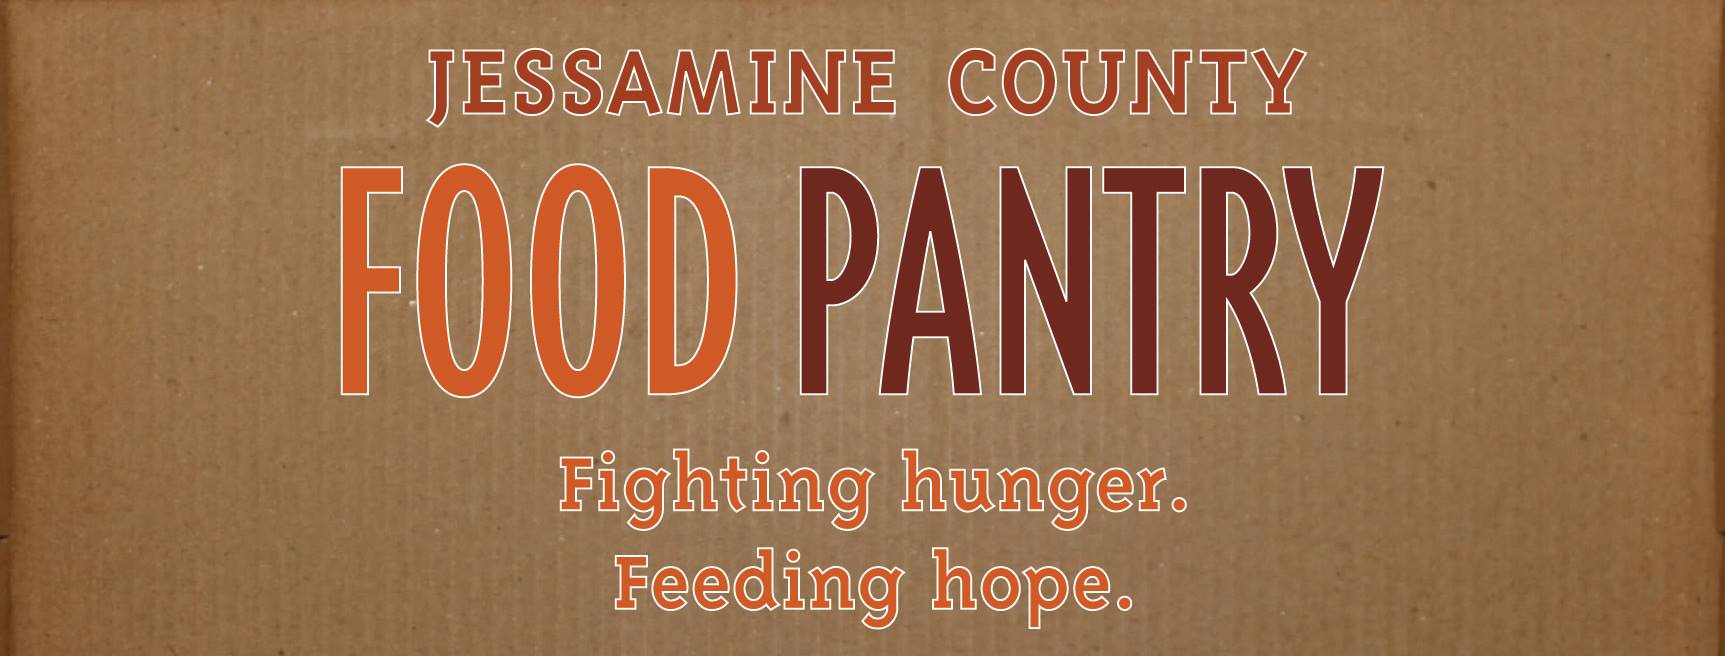 Jesssamine County Food Pantry